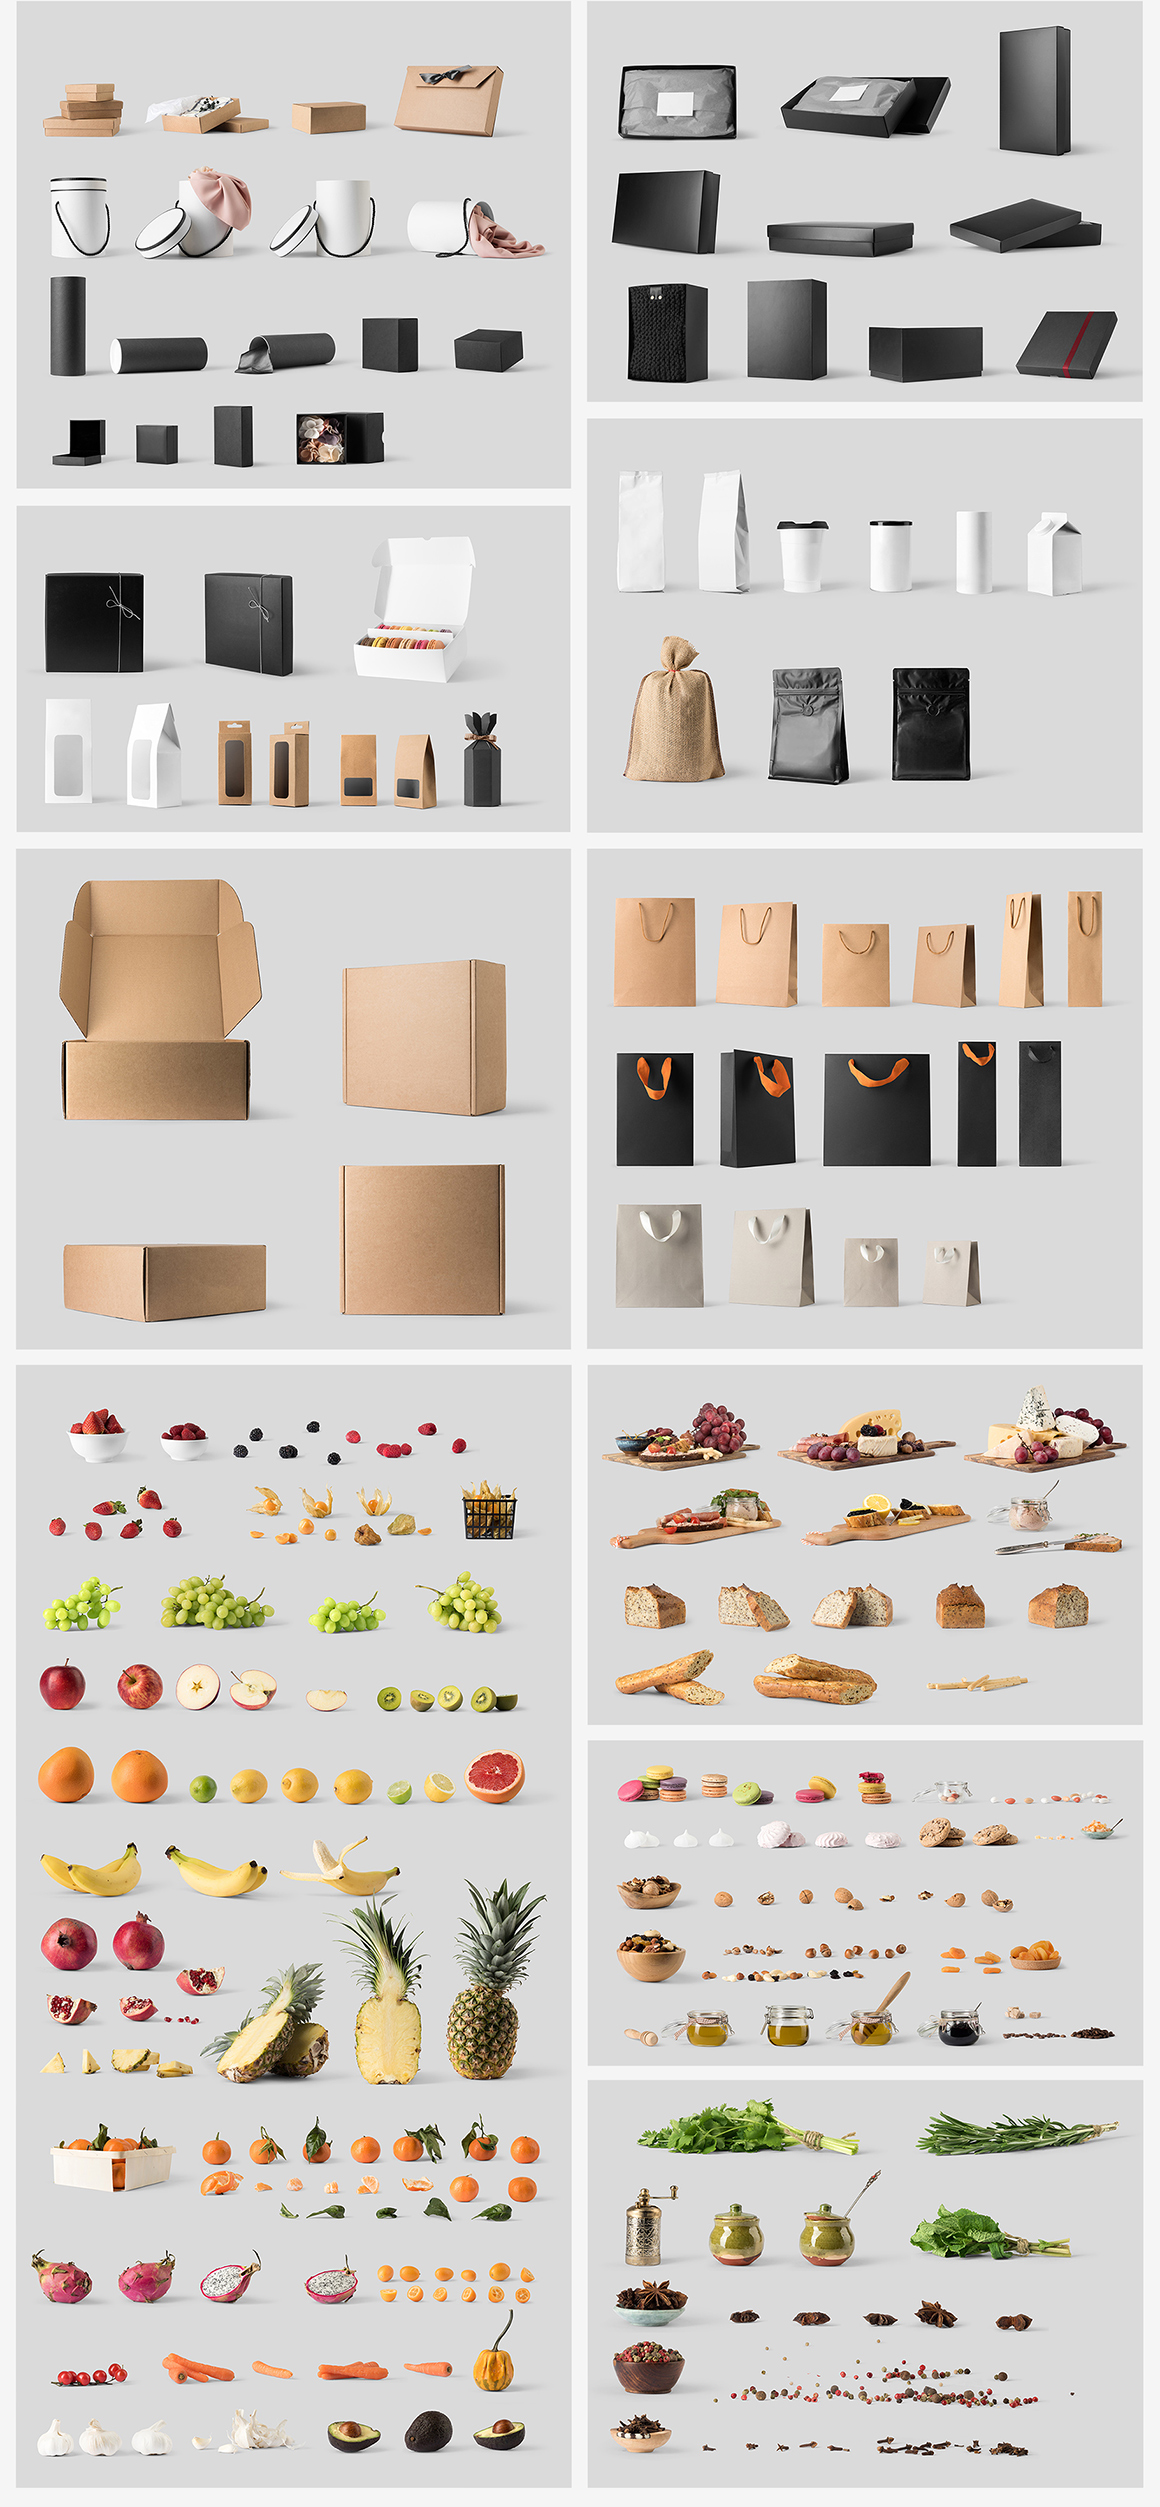 Packaging Mockup Collection